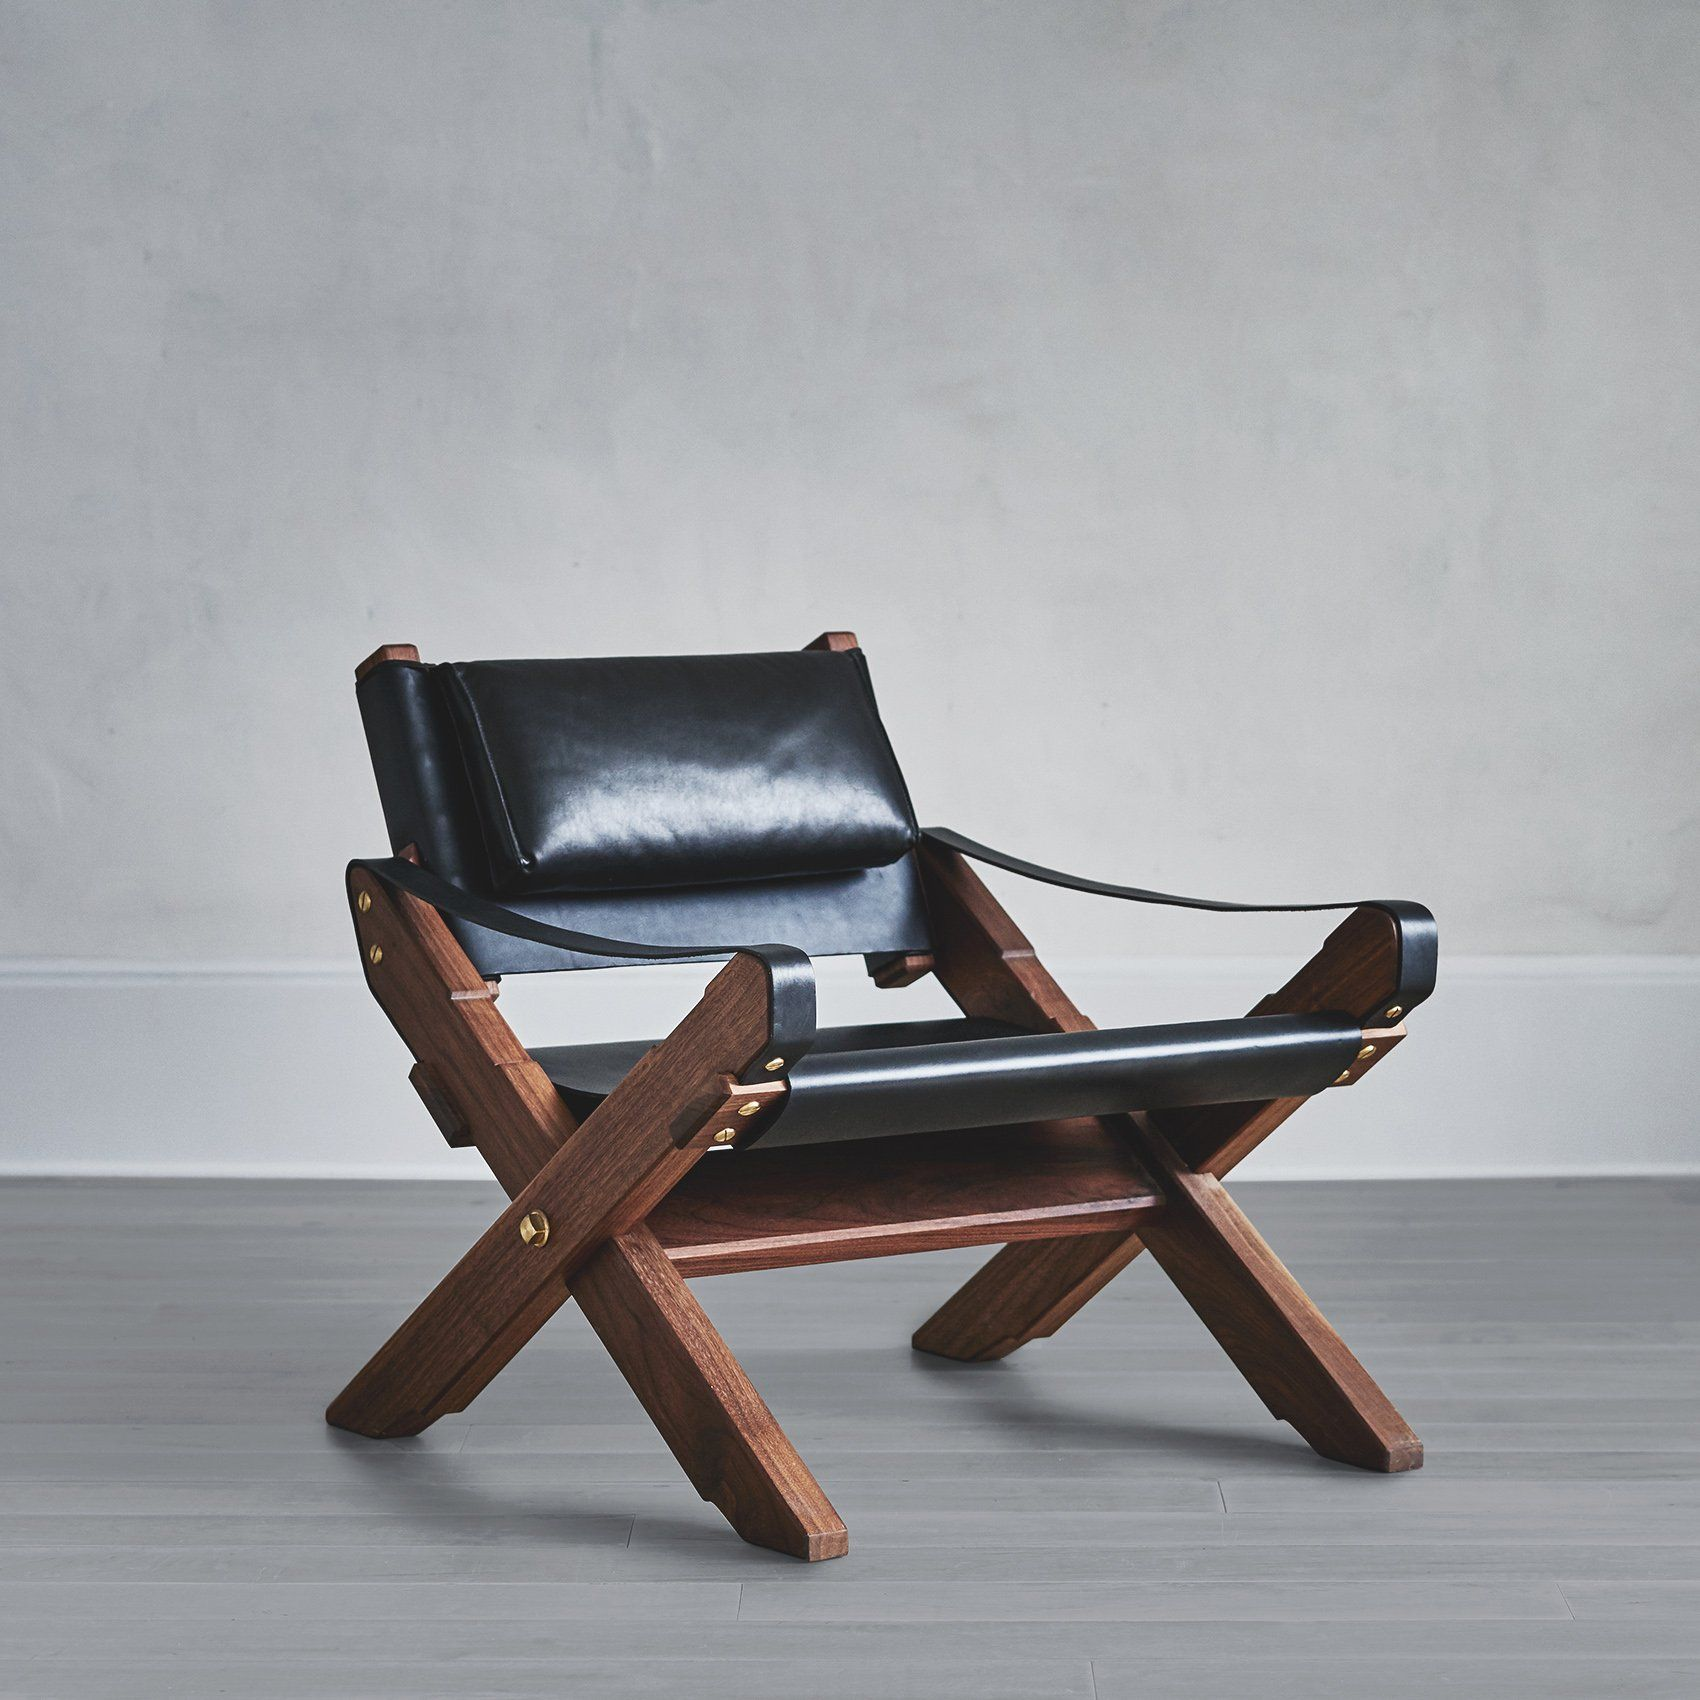 The Reader And Footstool Powerful Simple Structures Gather Focus Between Chaos And Clarity Campaign Furniture Chair Furniture